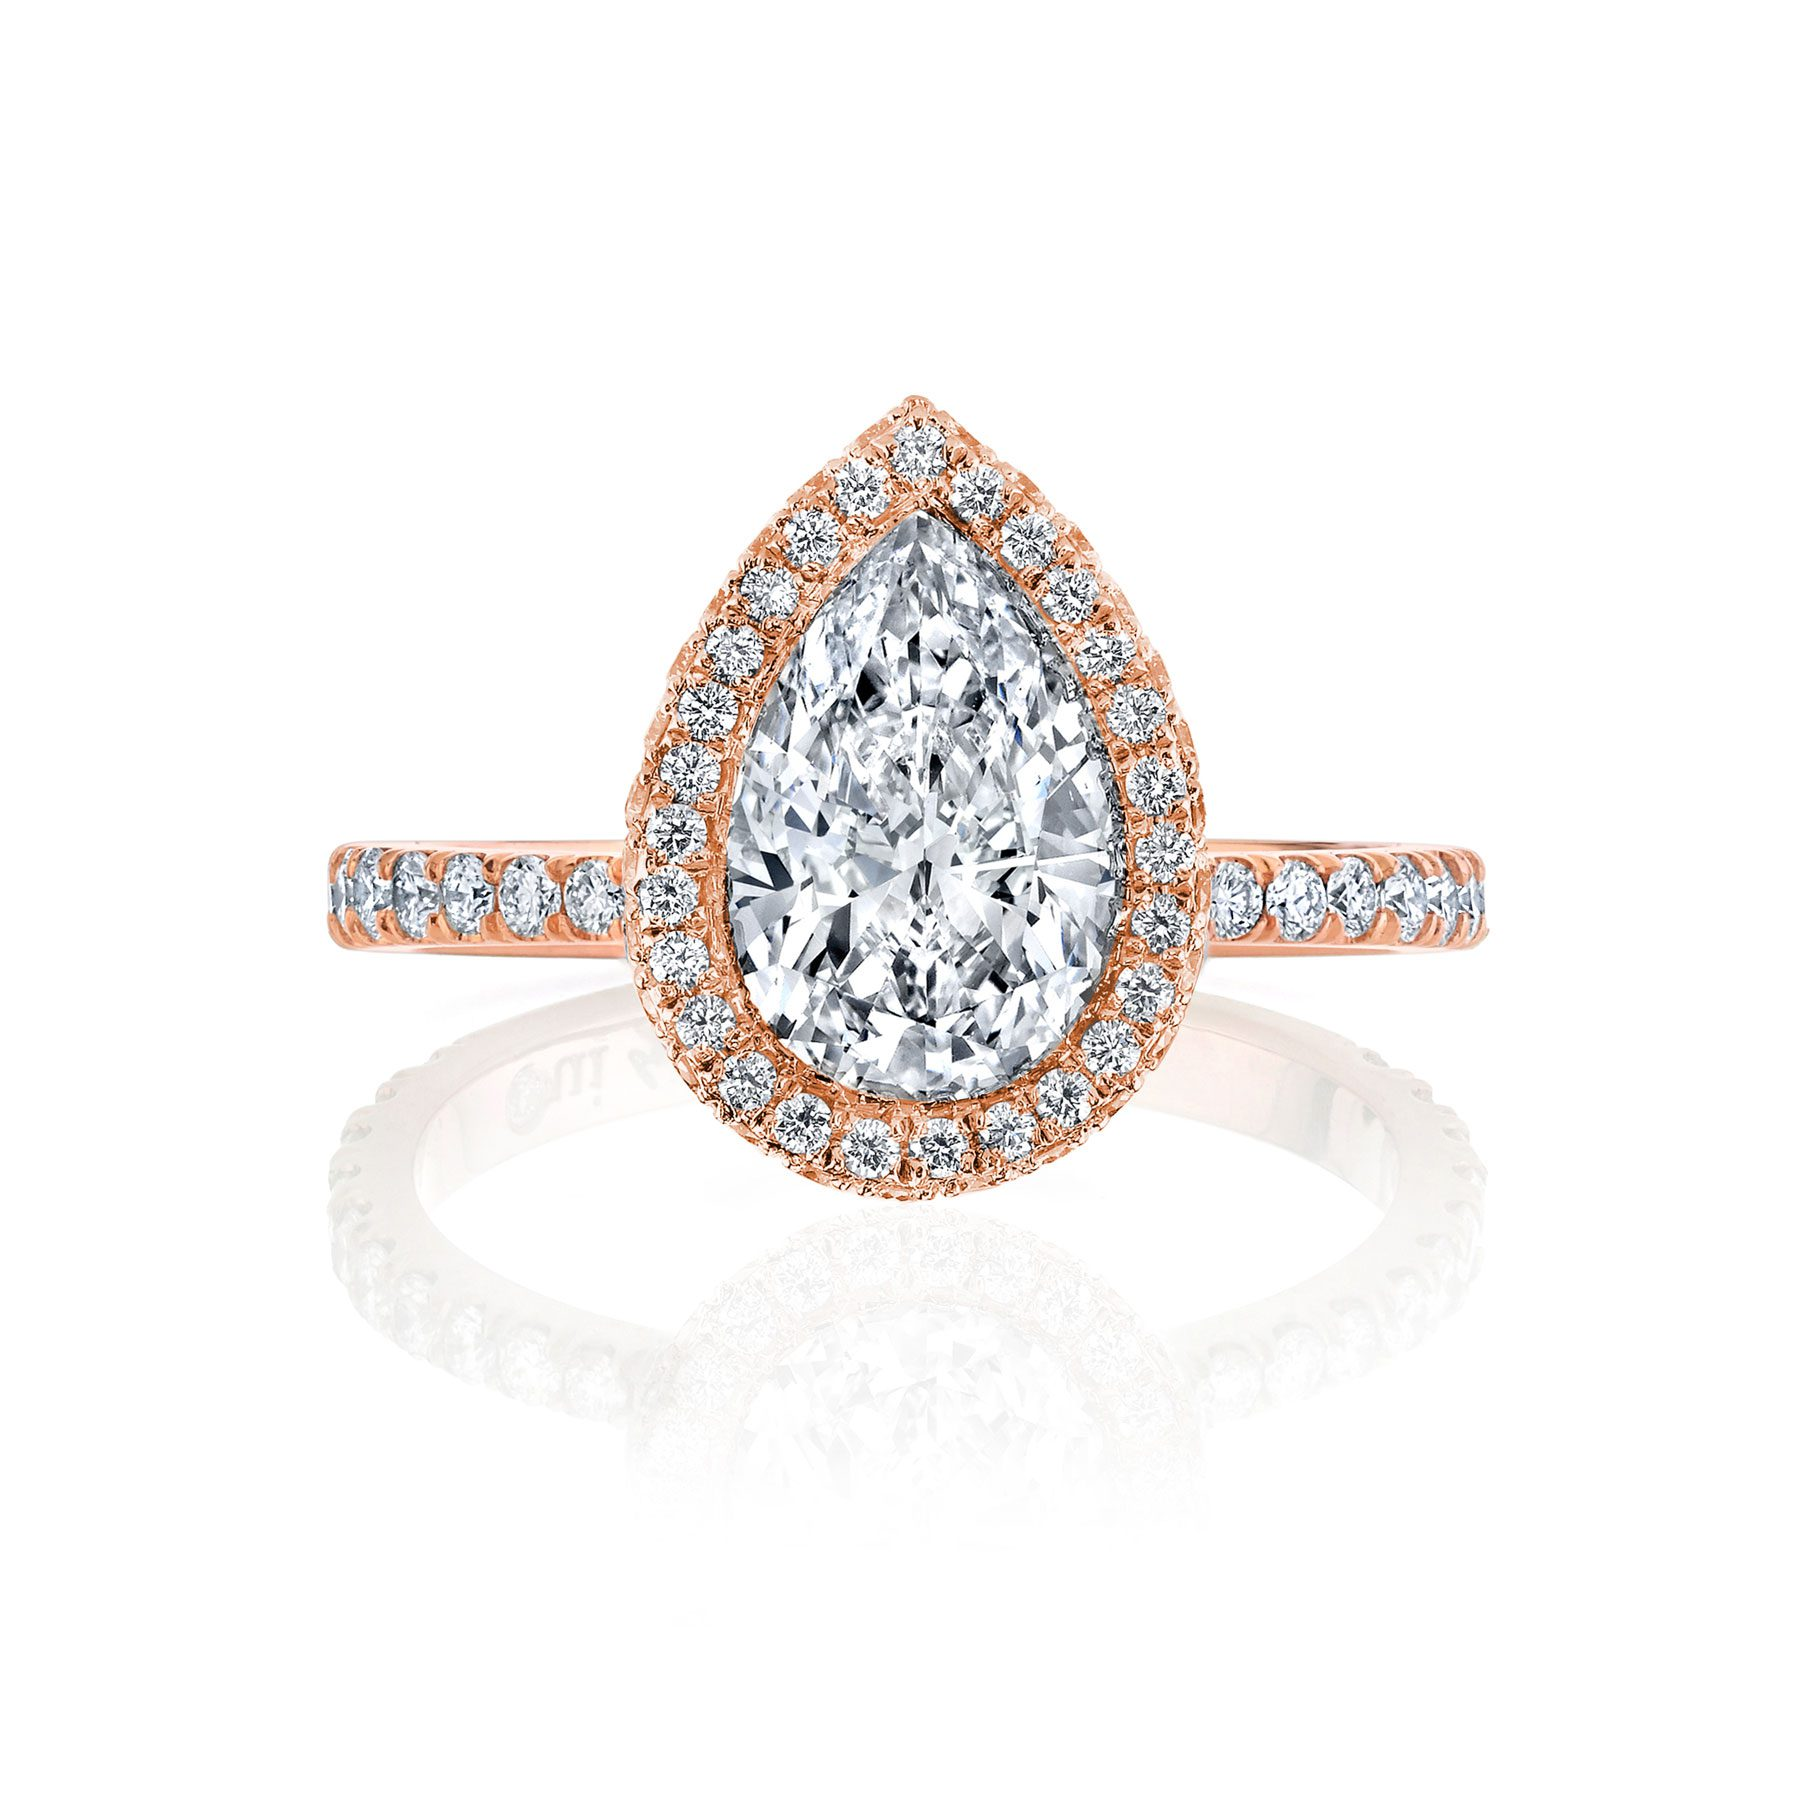 Eloise Seamless Halo® Pear Cut Engagement Ring One Row Pavé Band in 18k Rose Gold